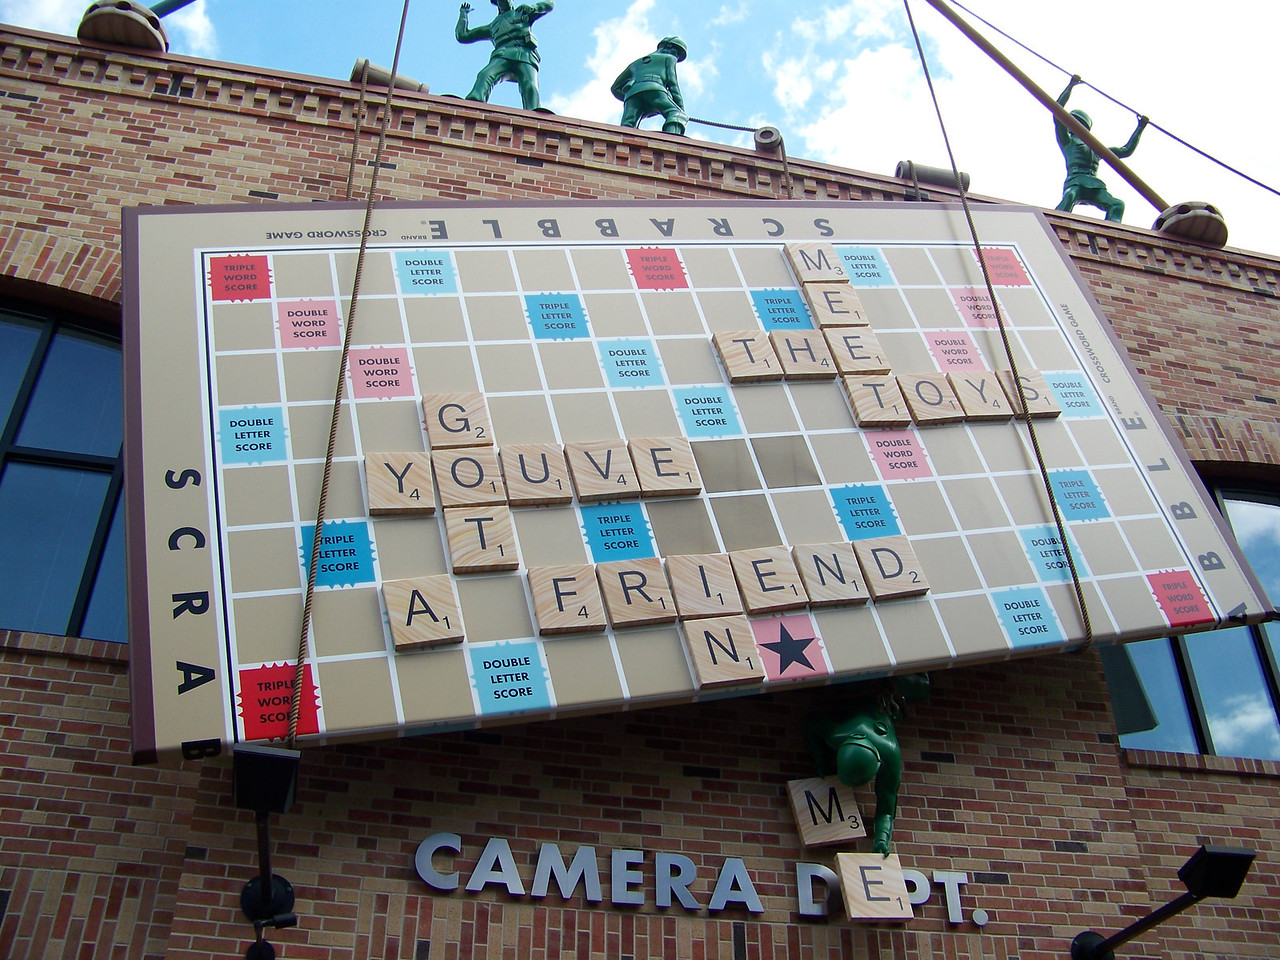 The little green army men are trying to tell us something via the Scrabble board....<br /> [Disney's Hollywood Studios]